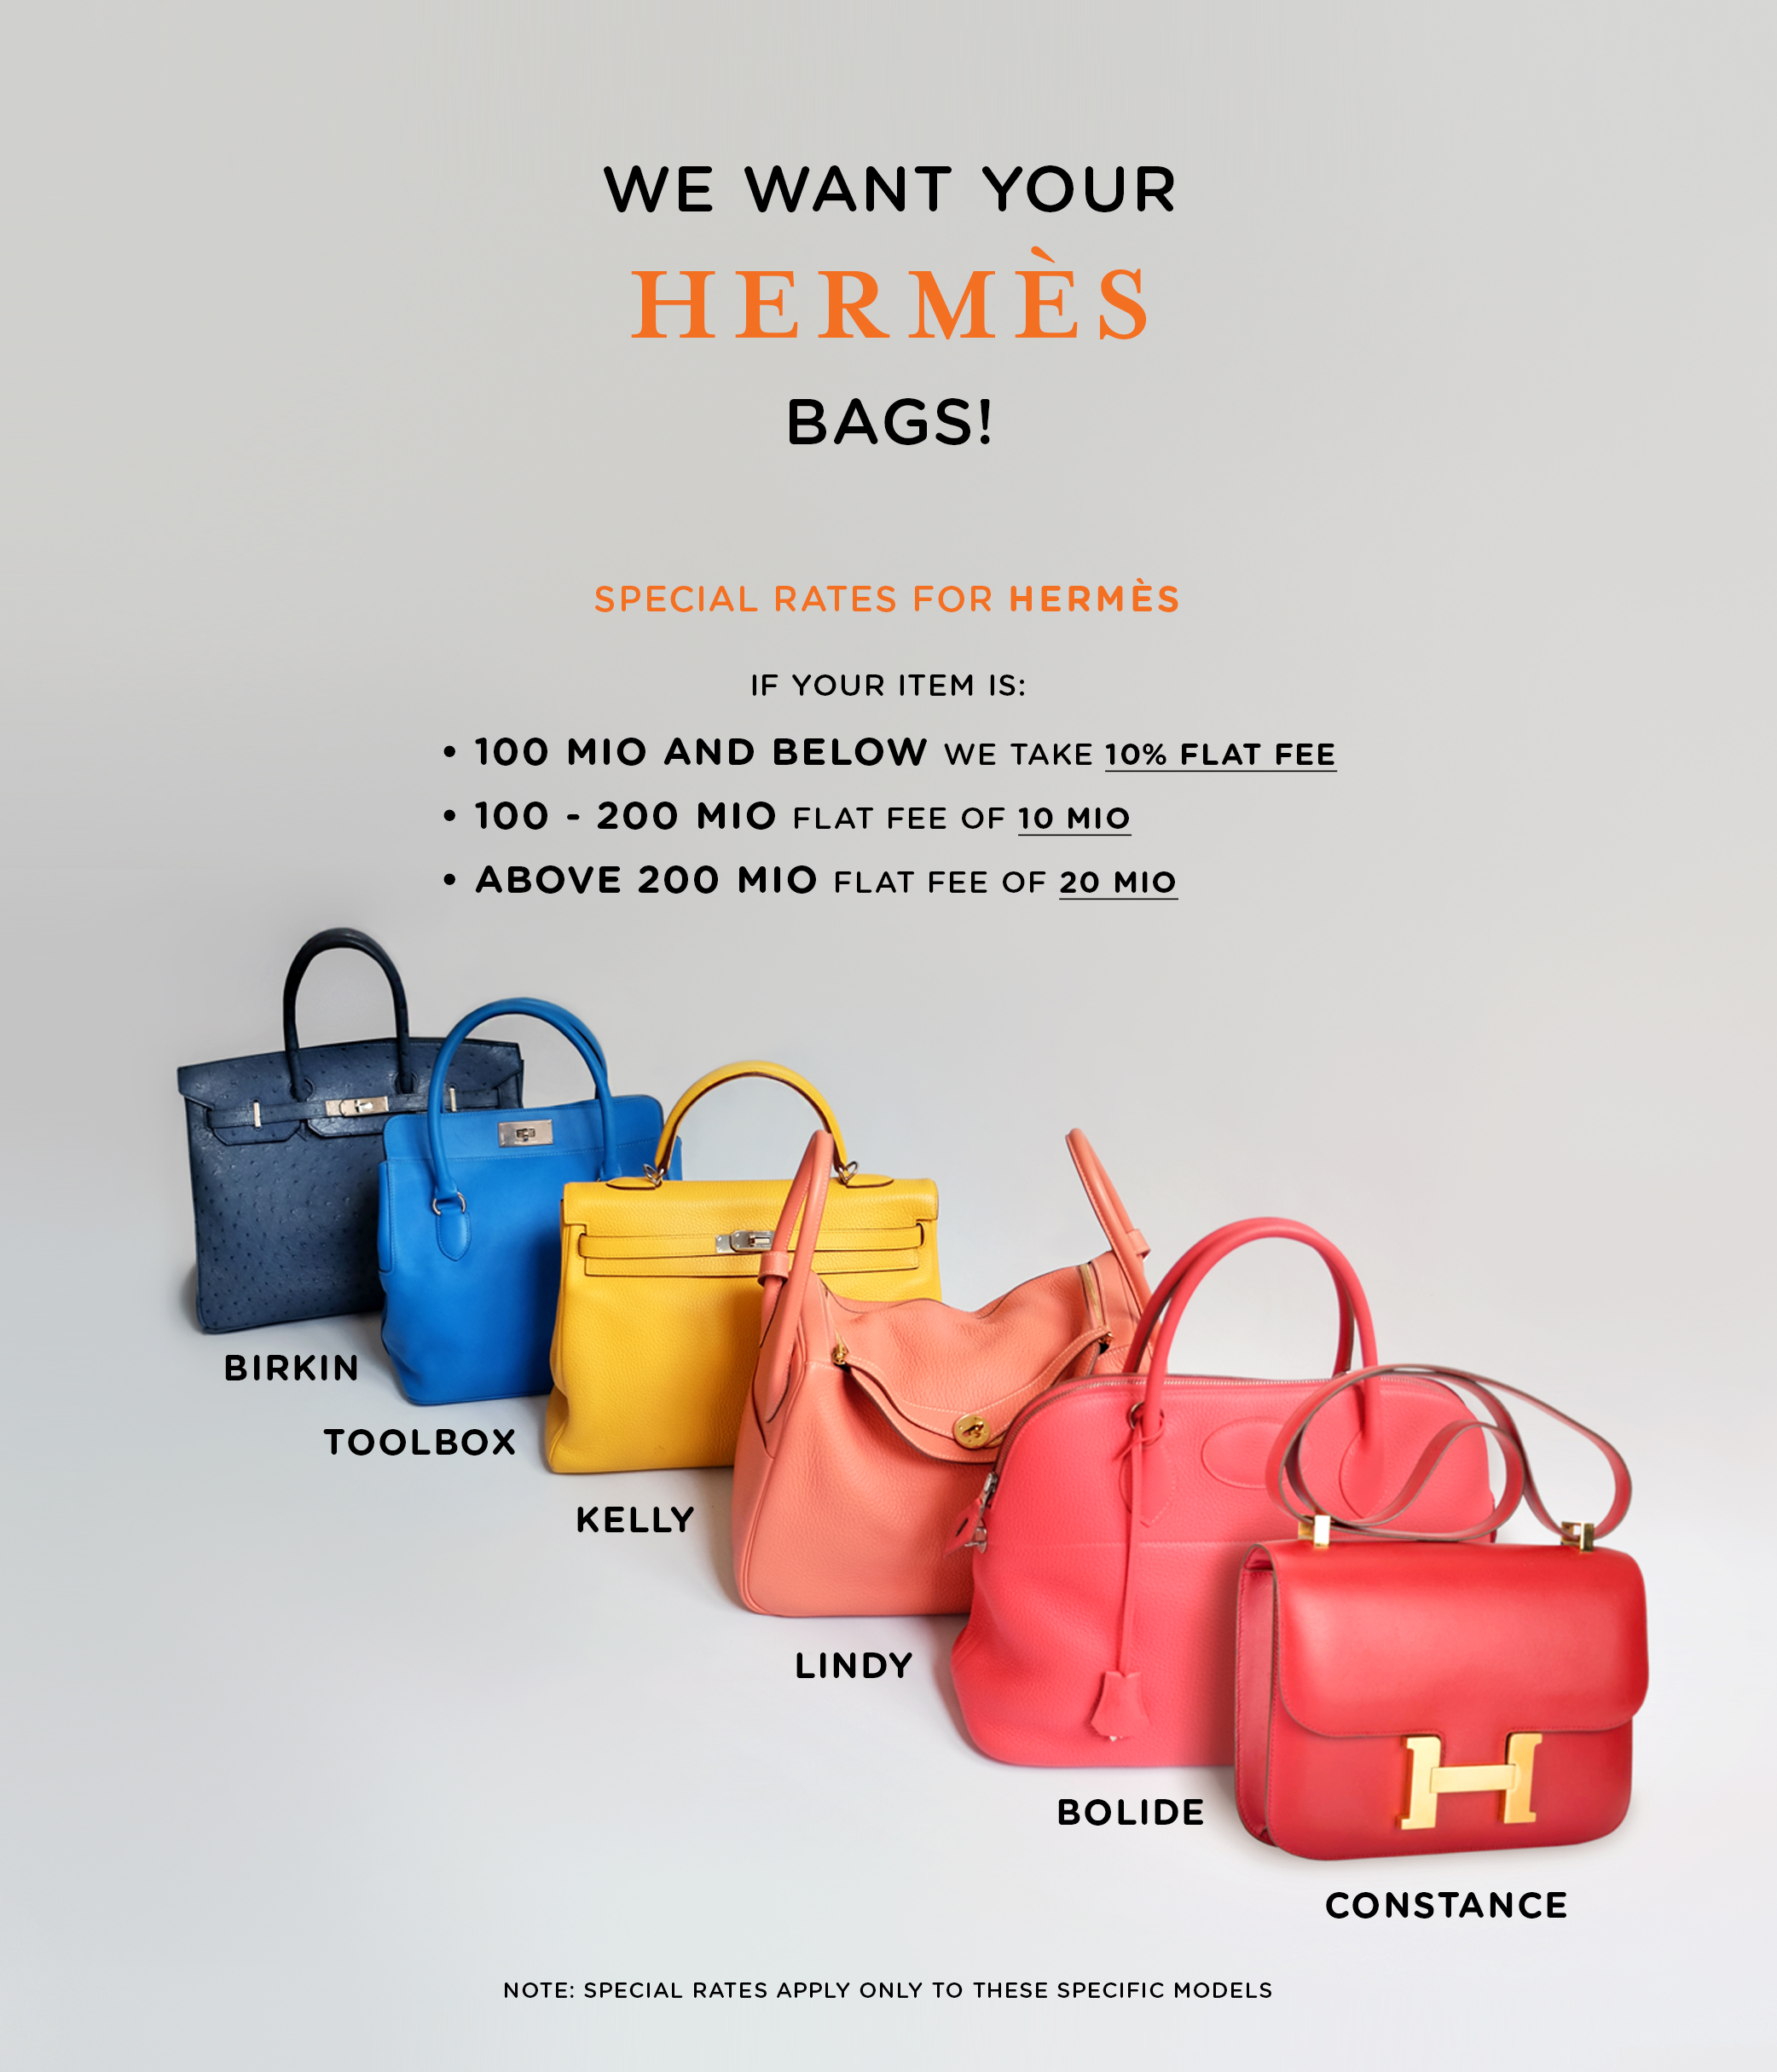 Consign Your HERMES Bags